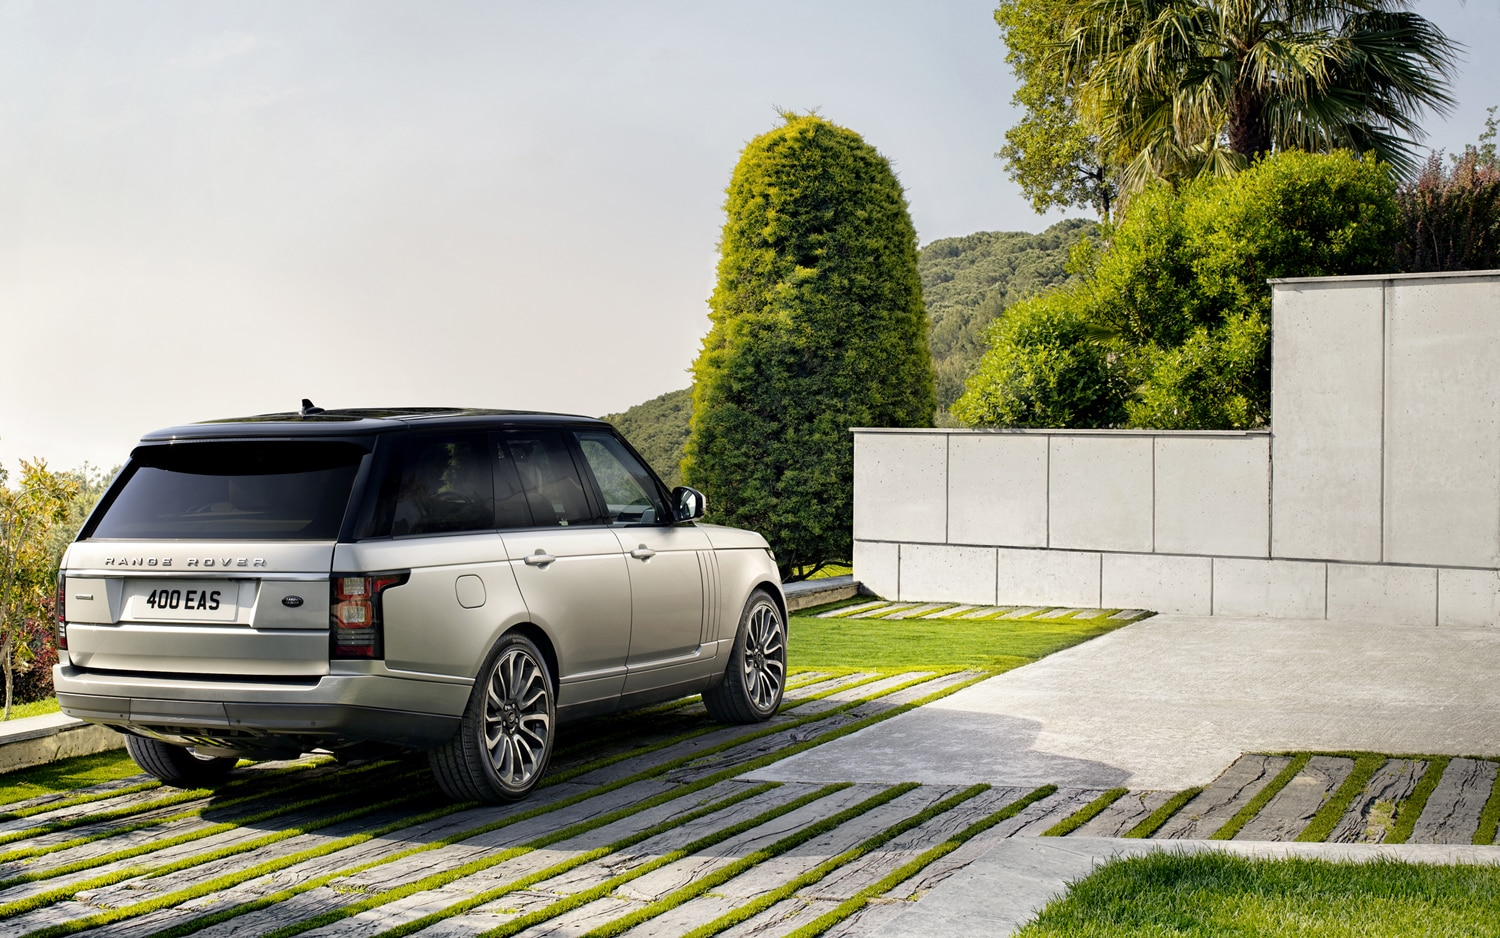 2013 Land Rover Range Rover Rear End